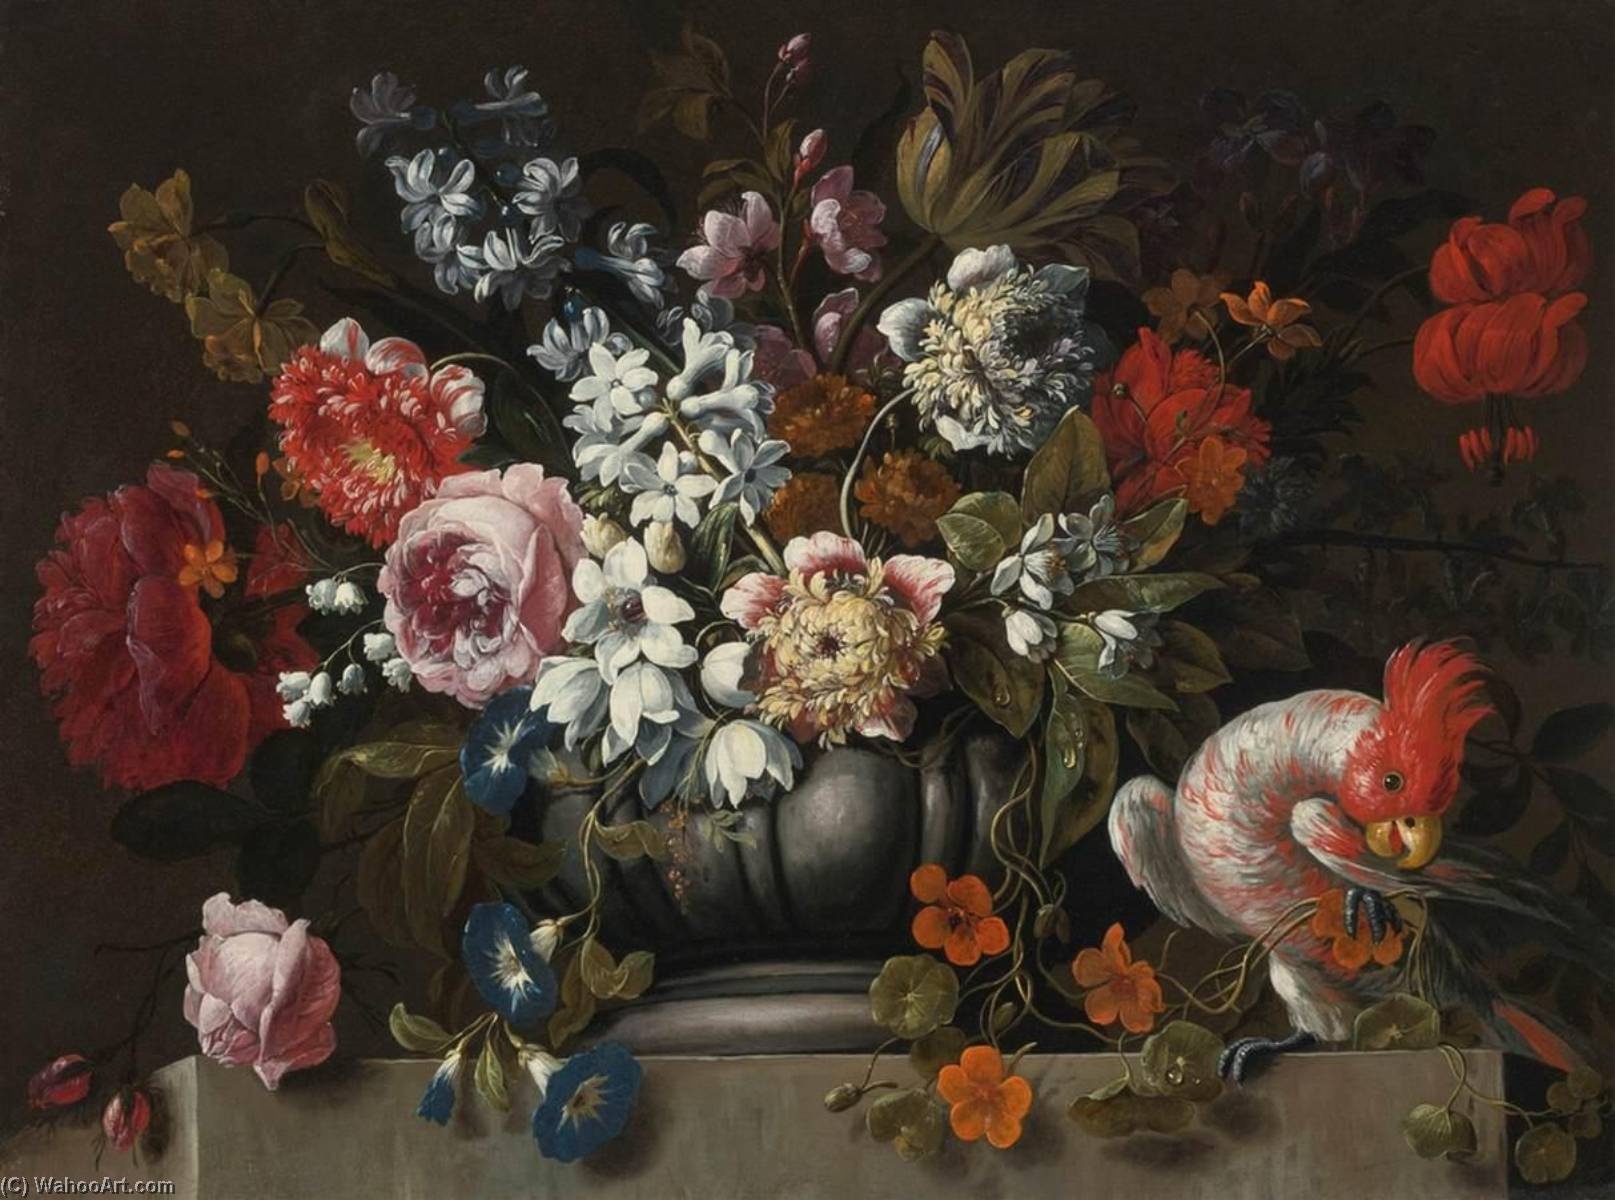 Still Life of Flowers in a Stone Urn with a Parrot by Gaspar Peeter The Younger Verbruggen | Oil Painting | WahooArt.com